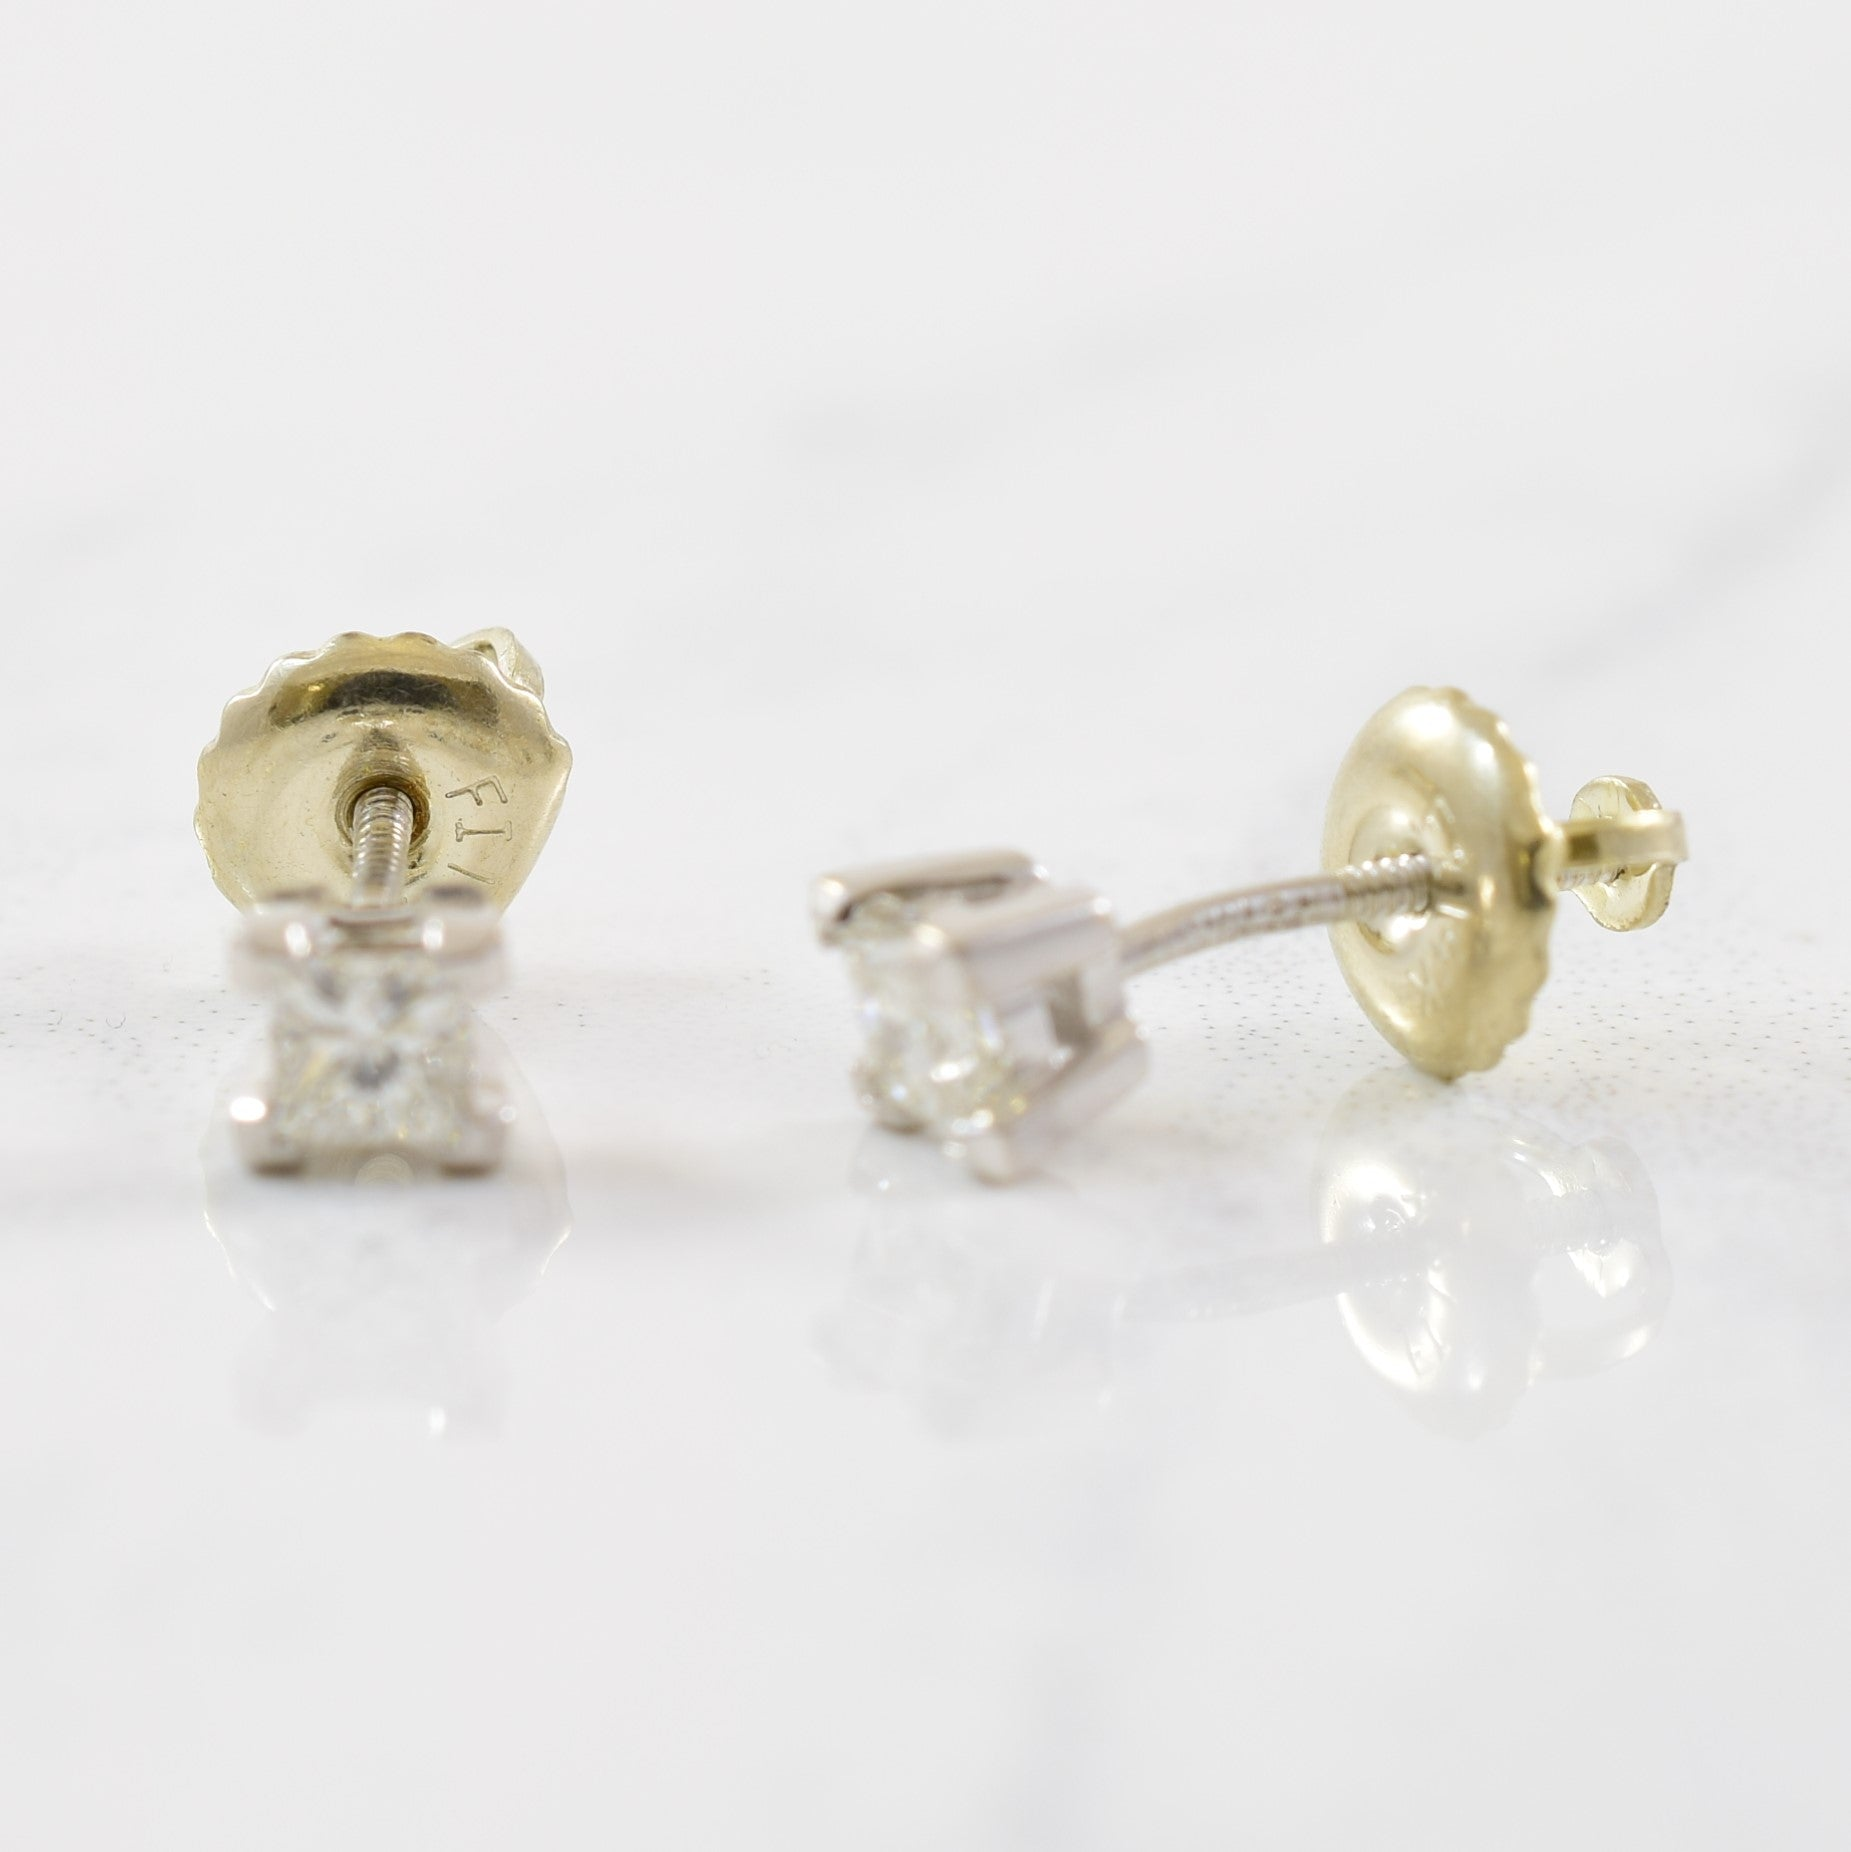 Princess Cut Diamond Stud Earrings | 0.20ctw |